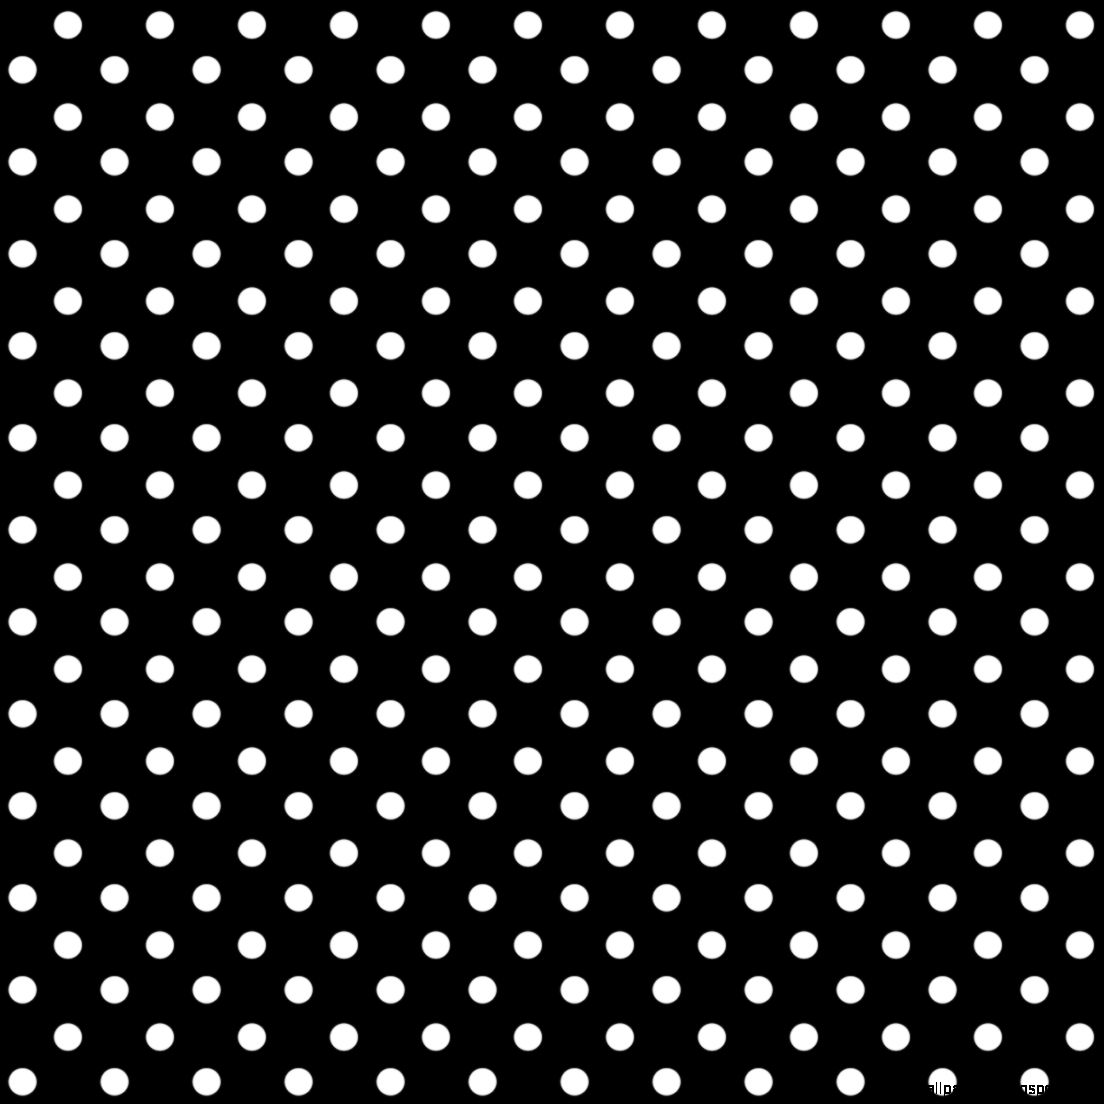 Black And White Polka Dot Pattern Seamless 35 Black And White